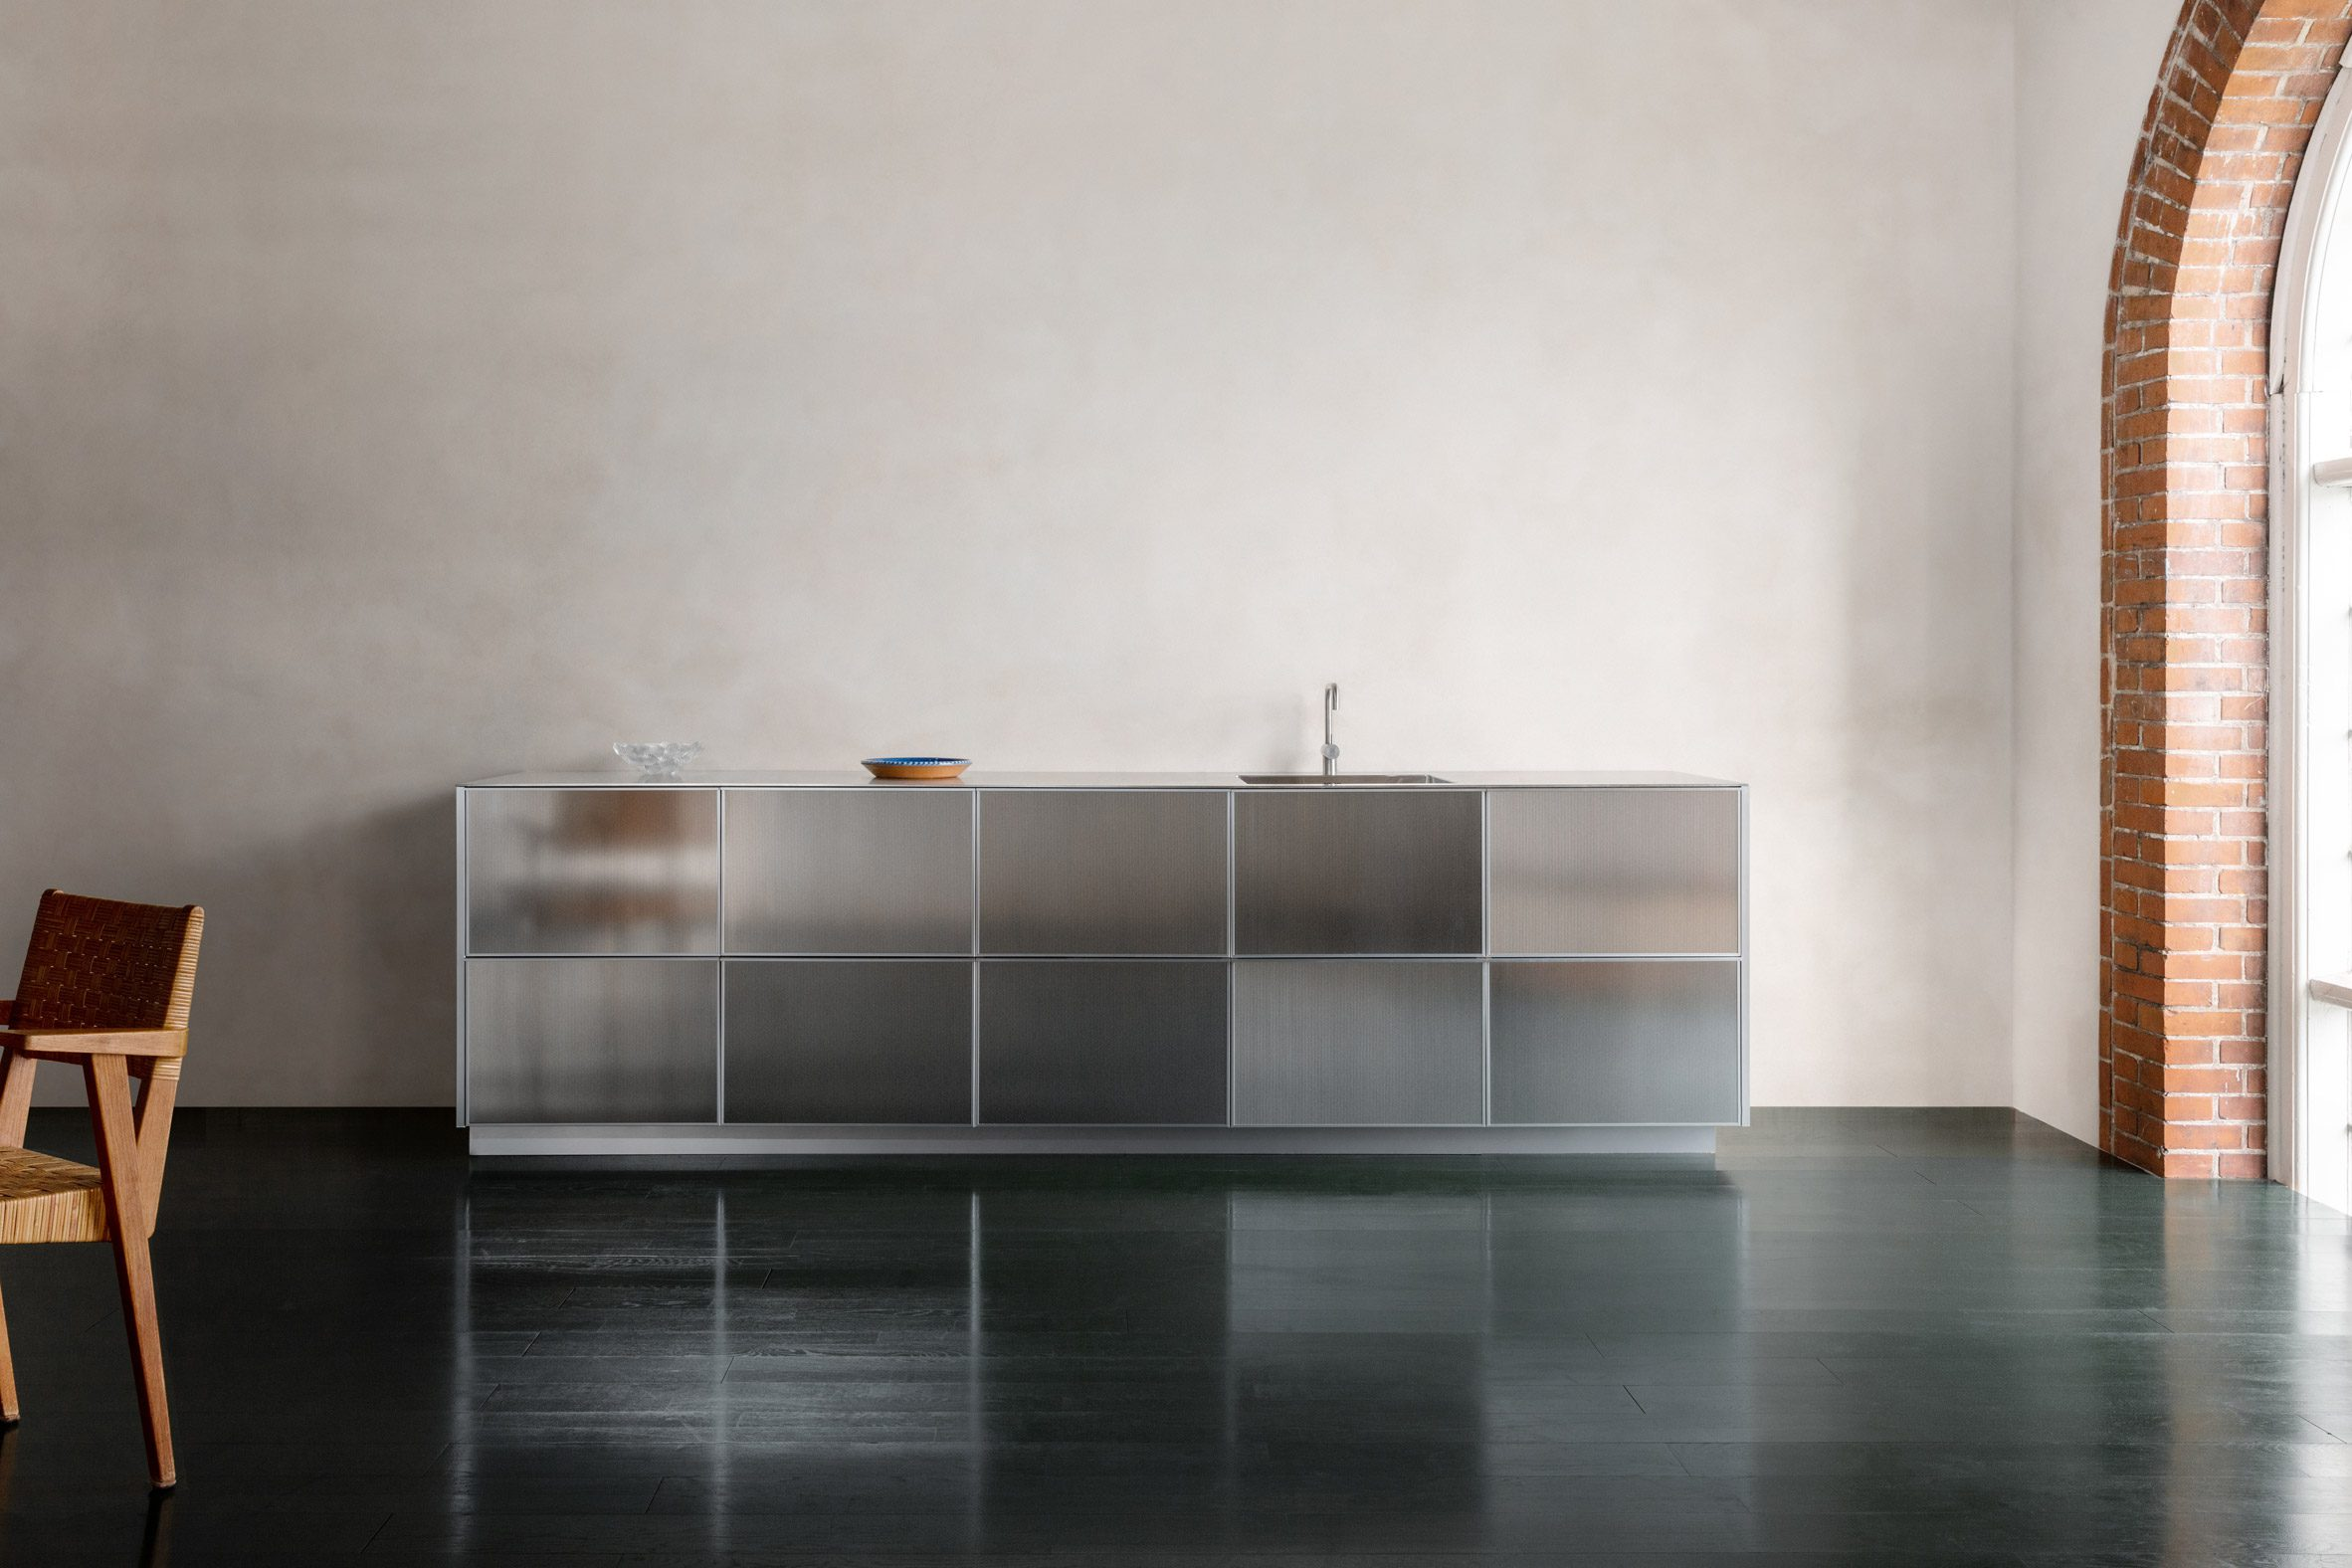 A photograph of a kitchen that reflects light